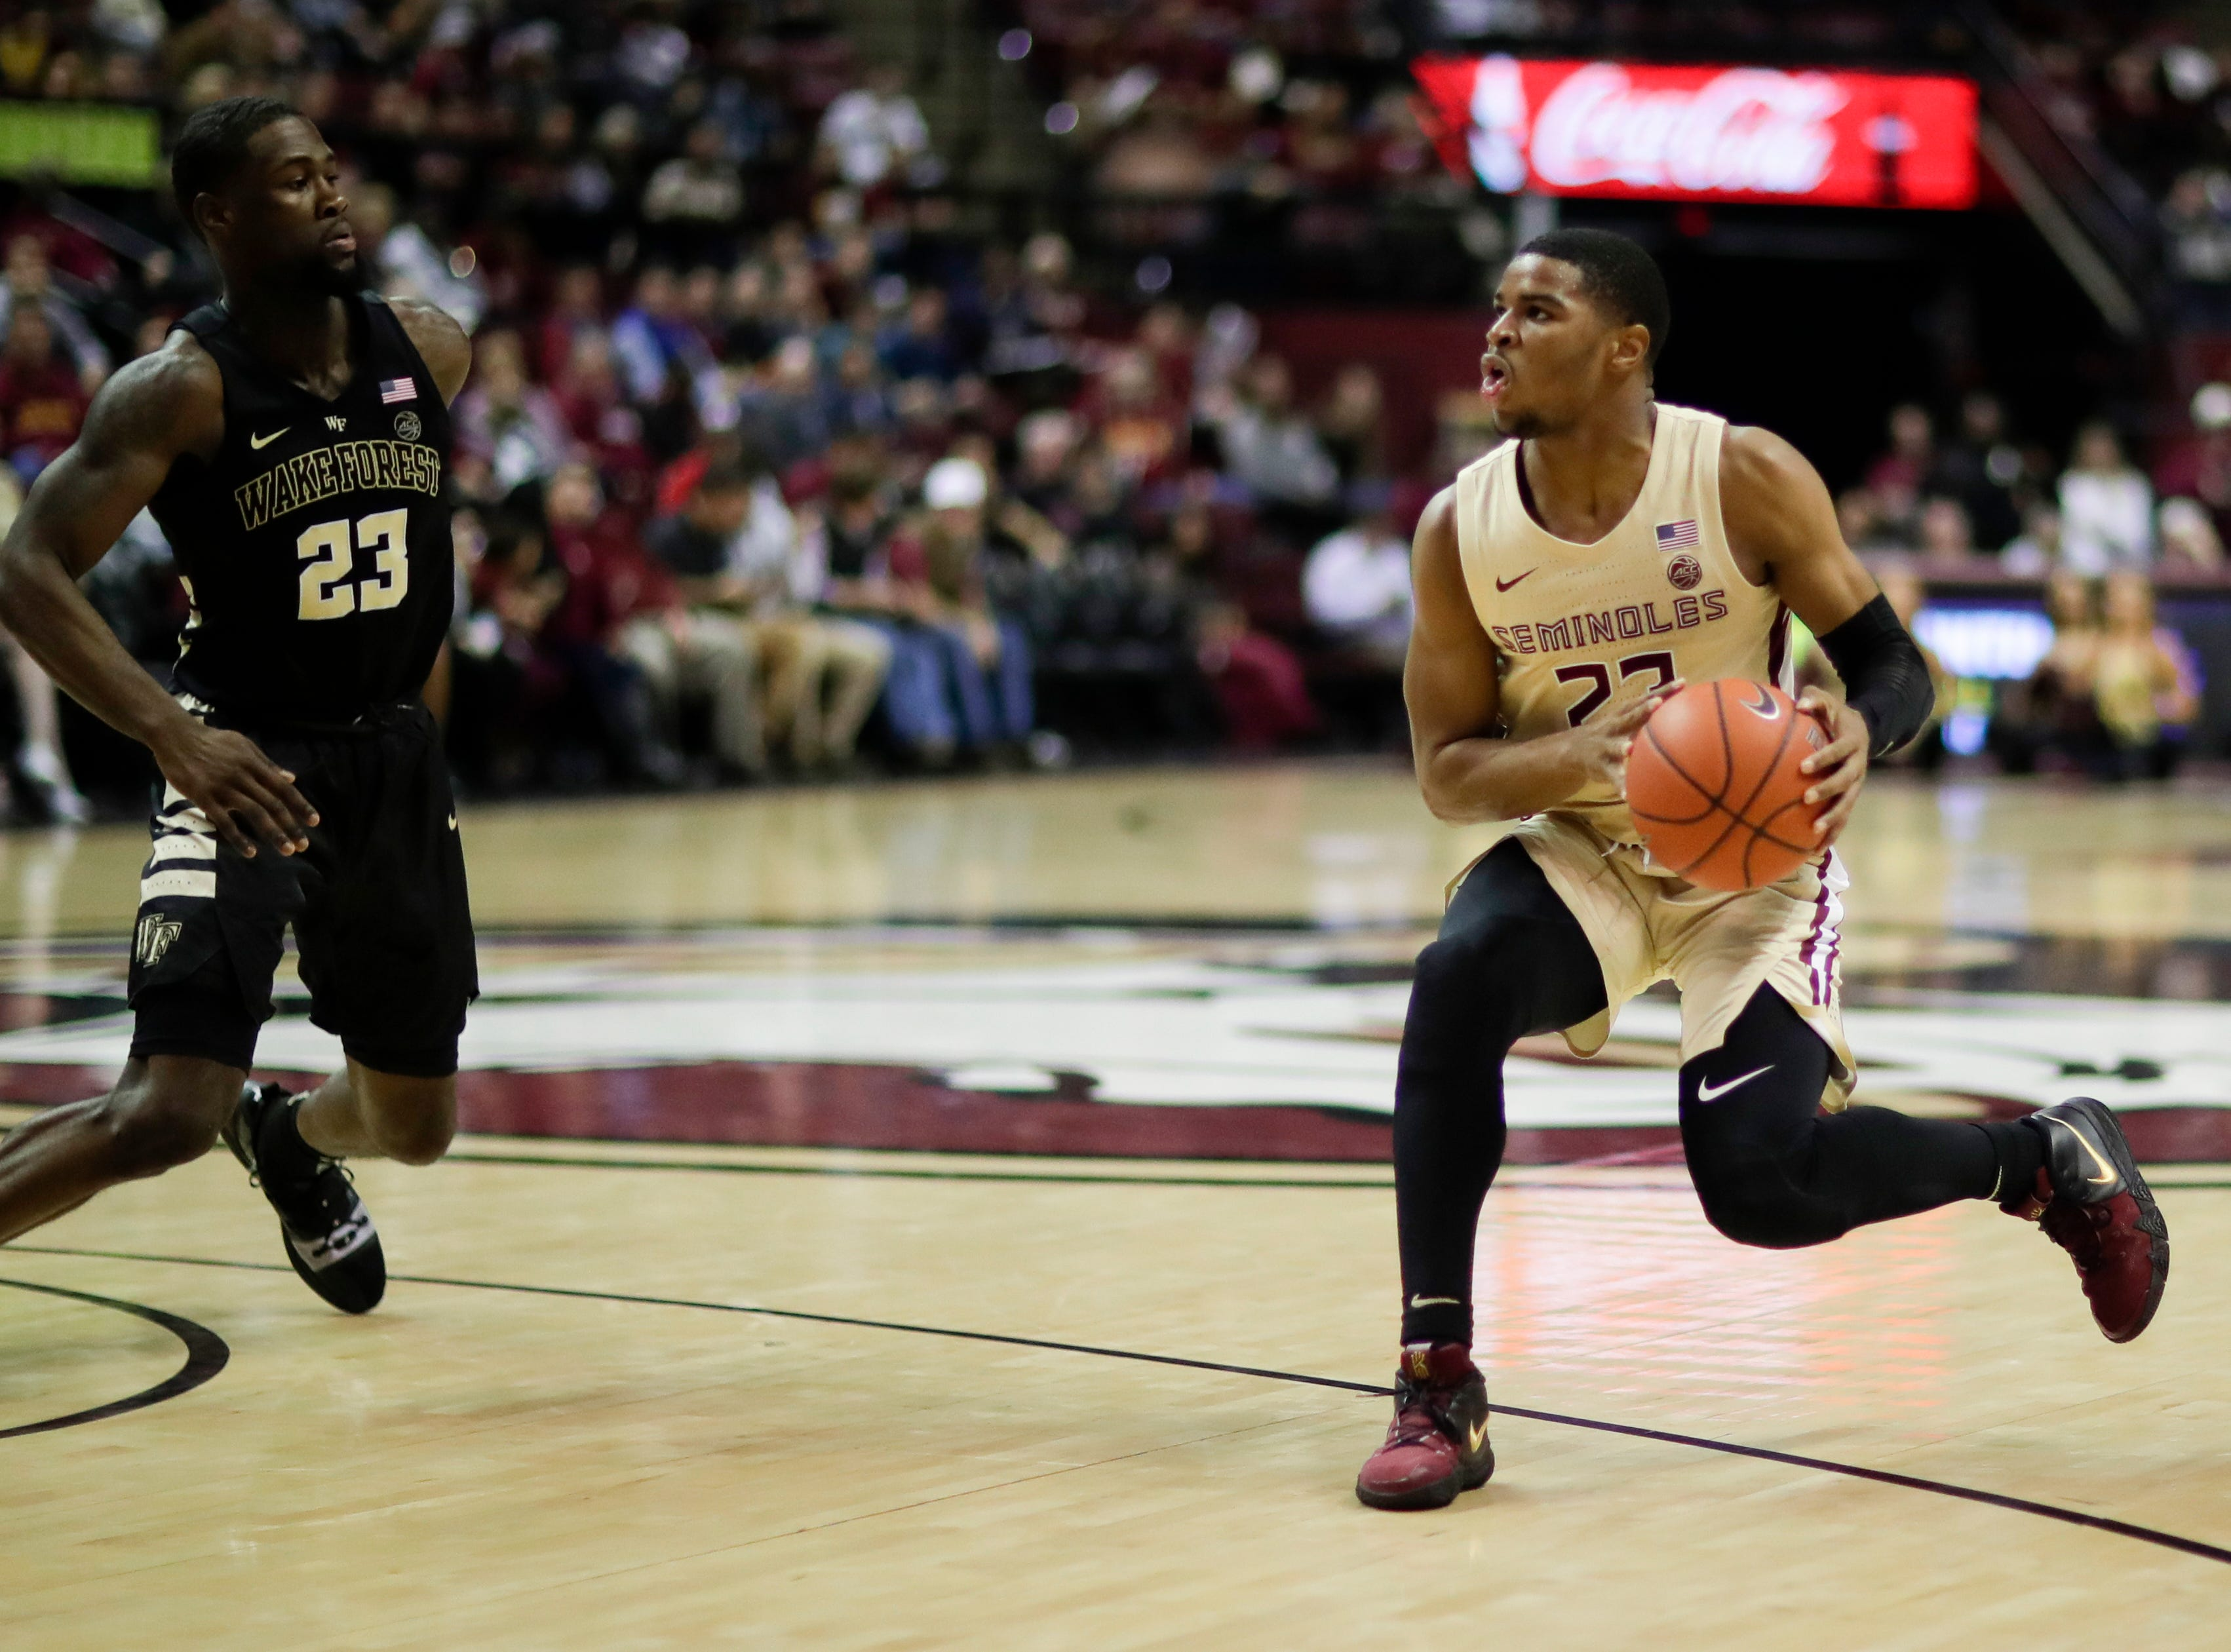 Florida State Seminoles guard M.J. Walker (23) jump stops during a game between FSU and Wake Forest at the Donald L. Tucker Civic Center Wednesday, Feb. 13, 2019.